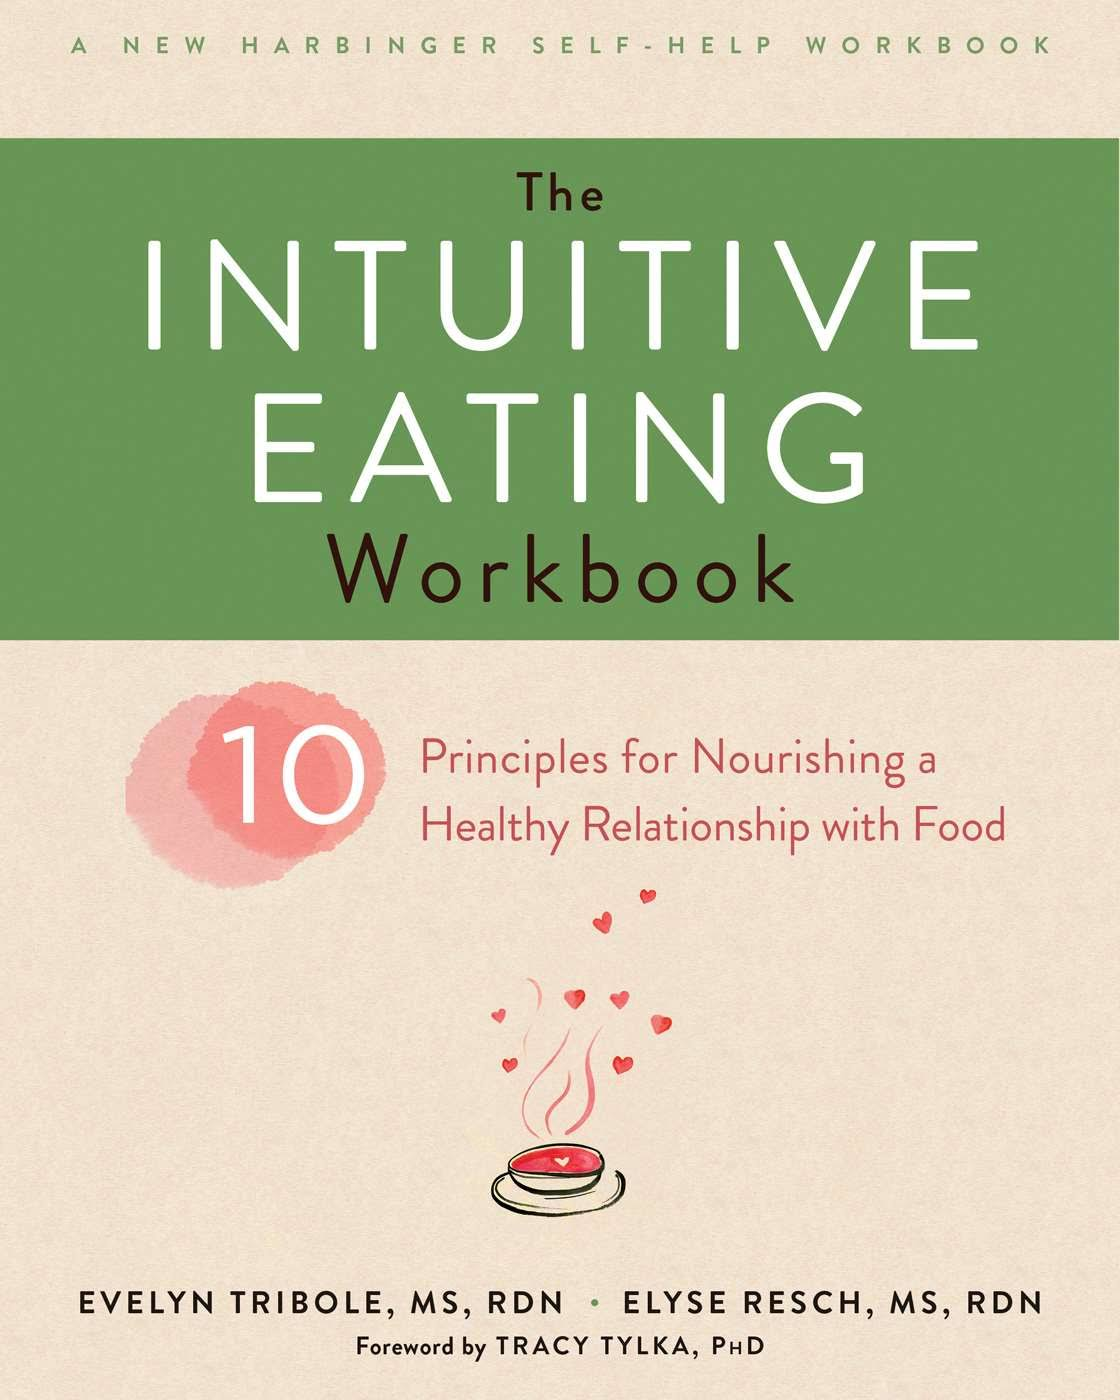 """""""The Intuitive Eating Workbook"""" by Evelyn Tibole (Author) and Elyse Reech  (Author)"""